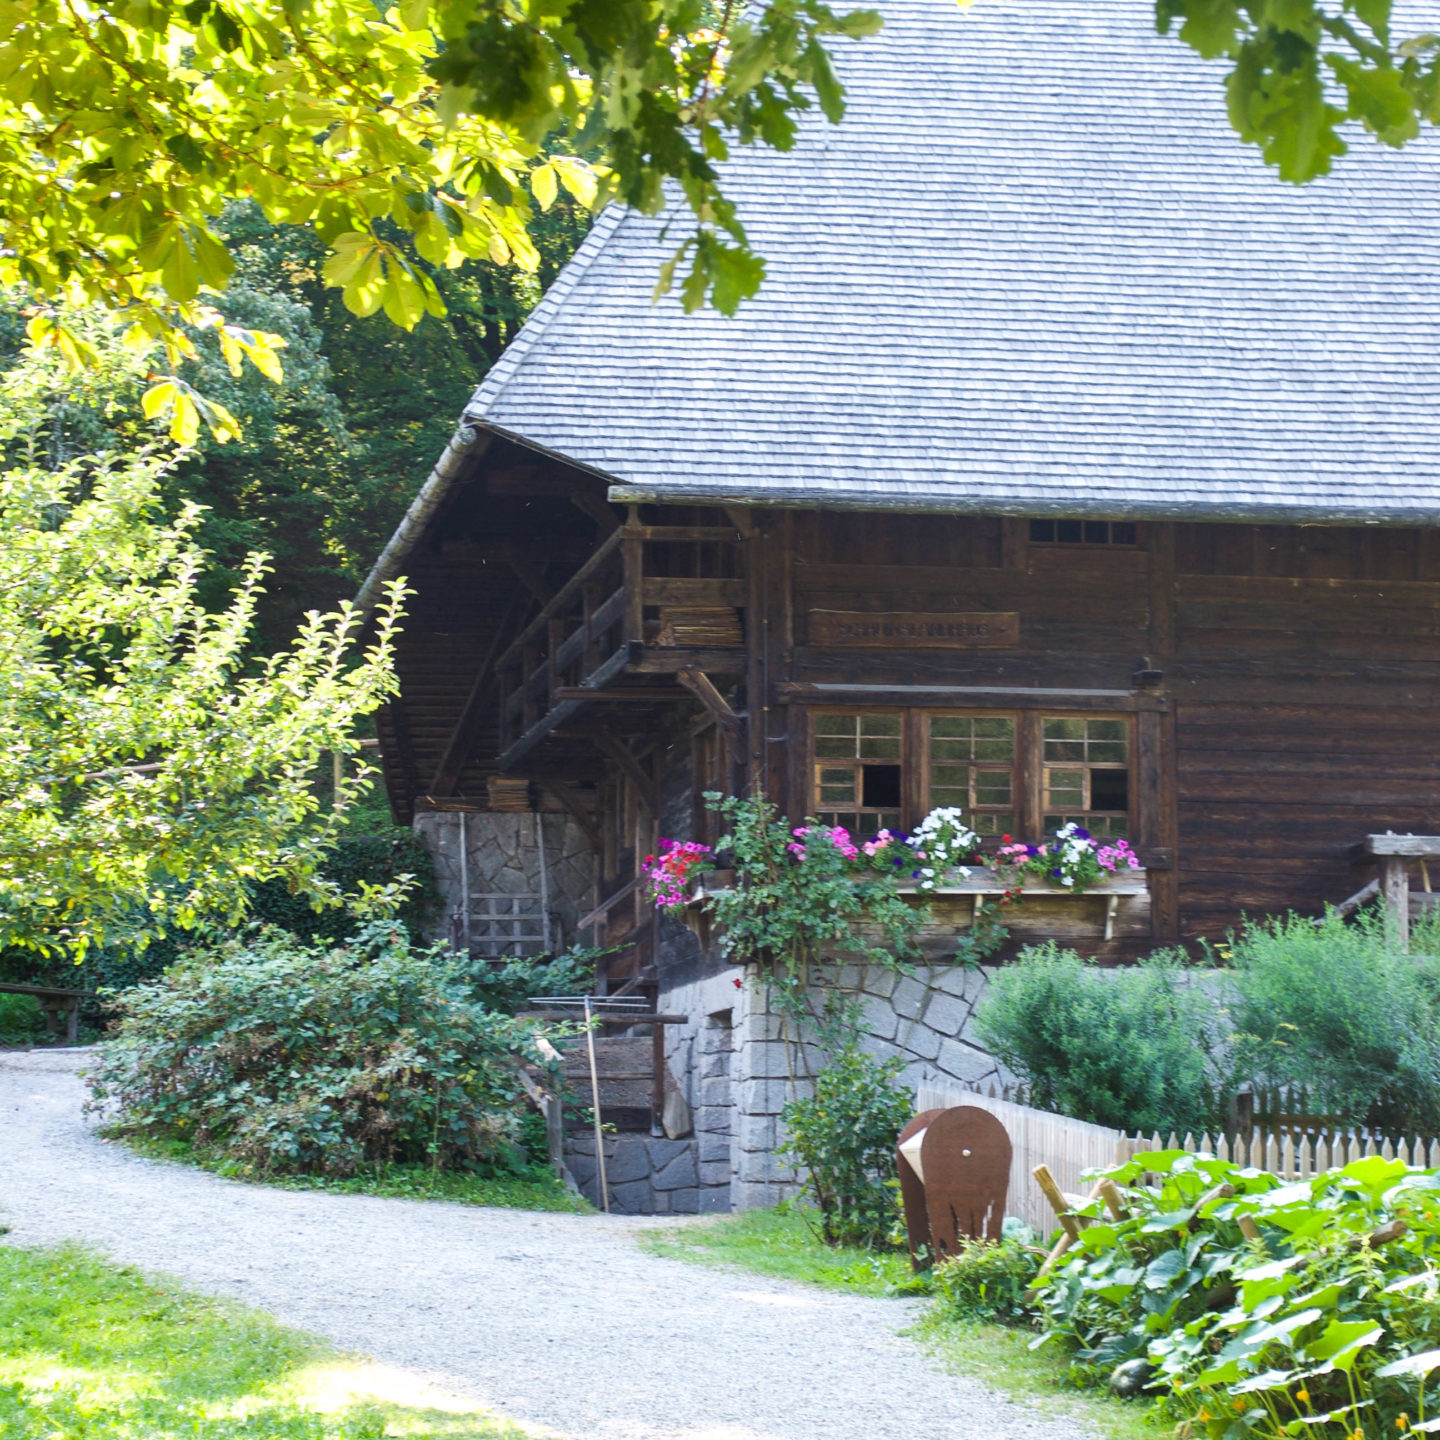 More gorgeous farmhouses in the museum area.